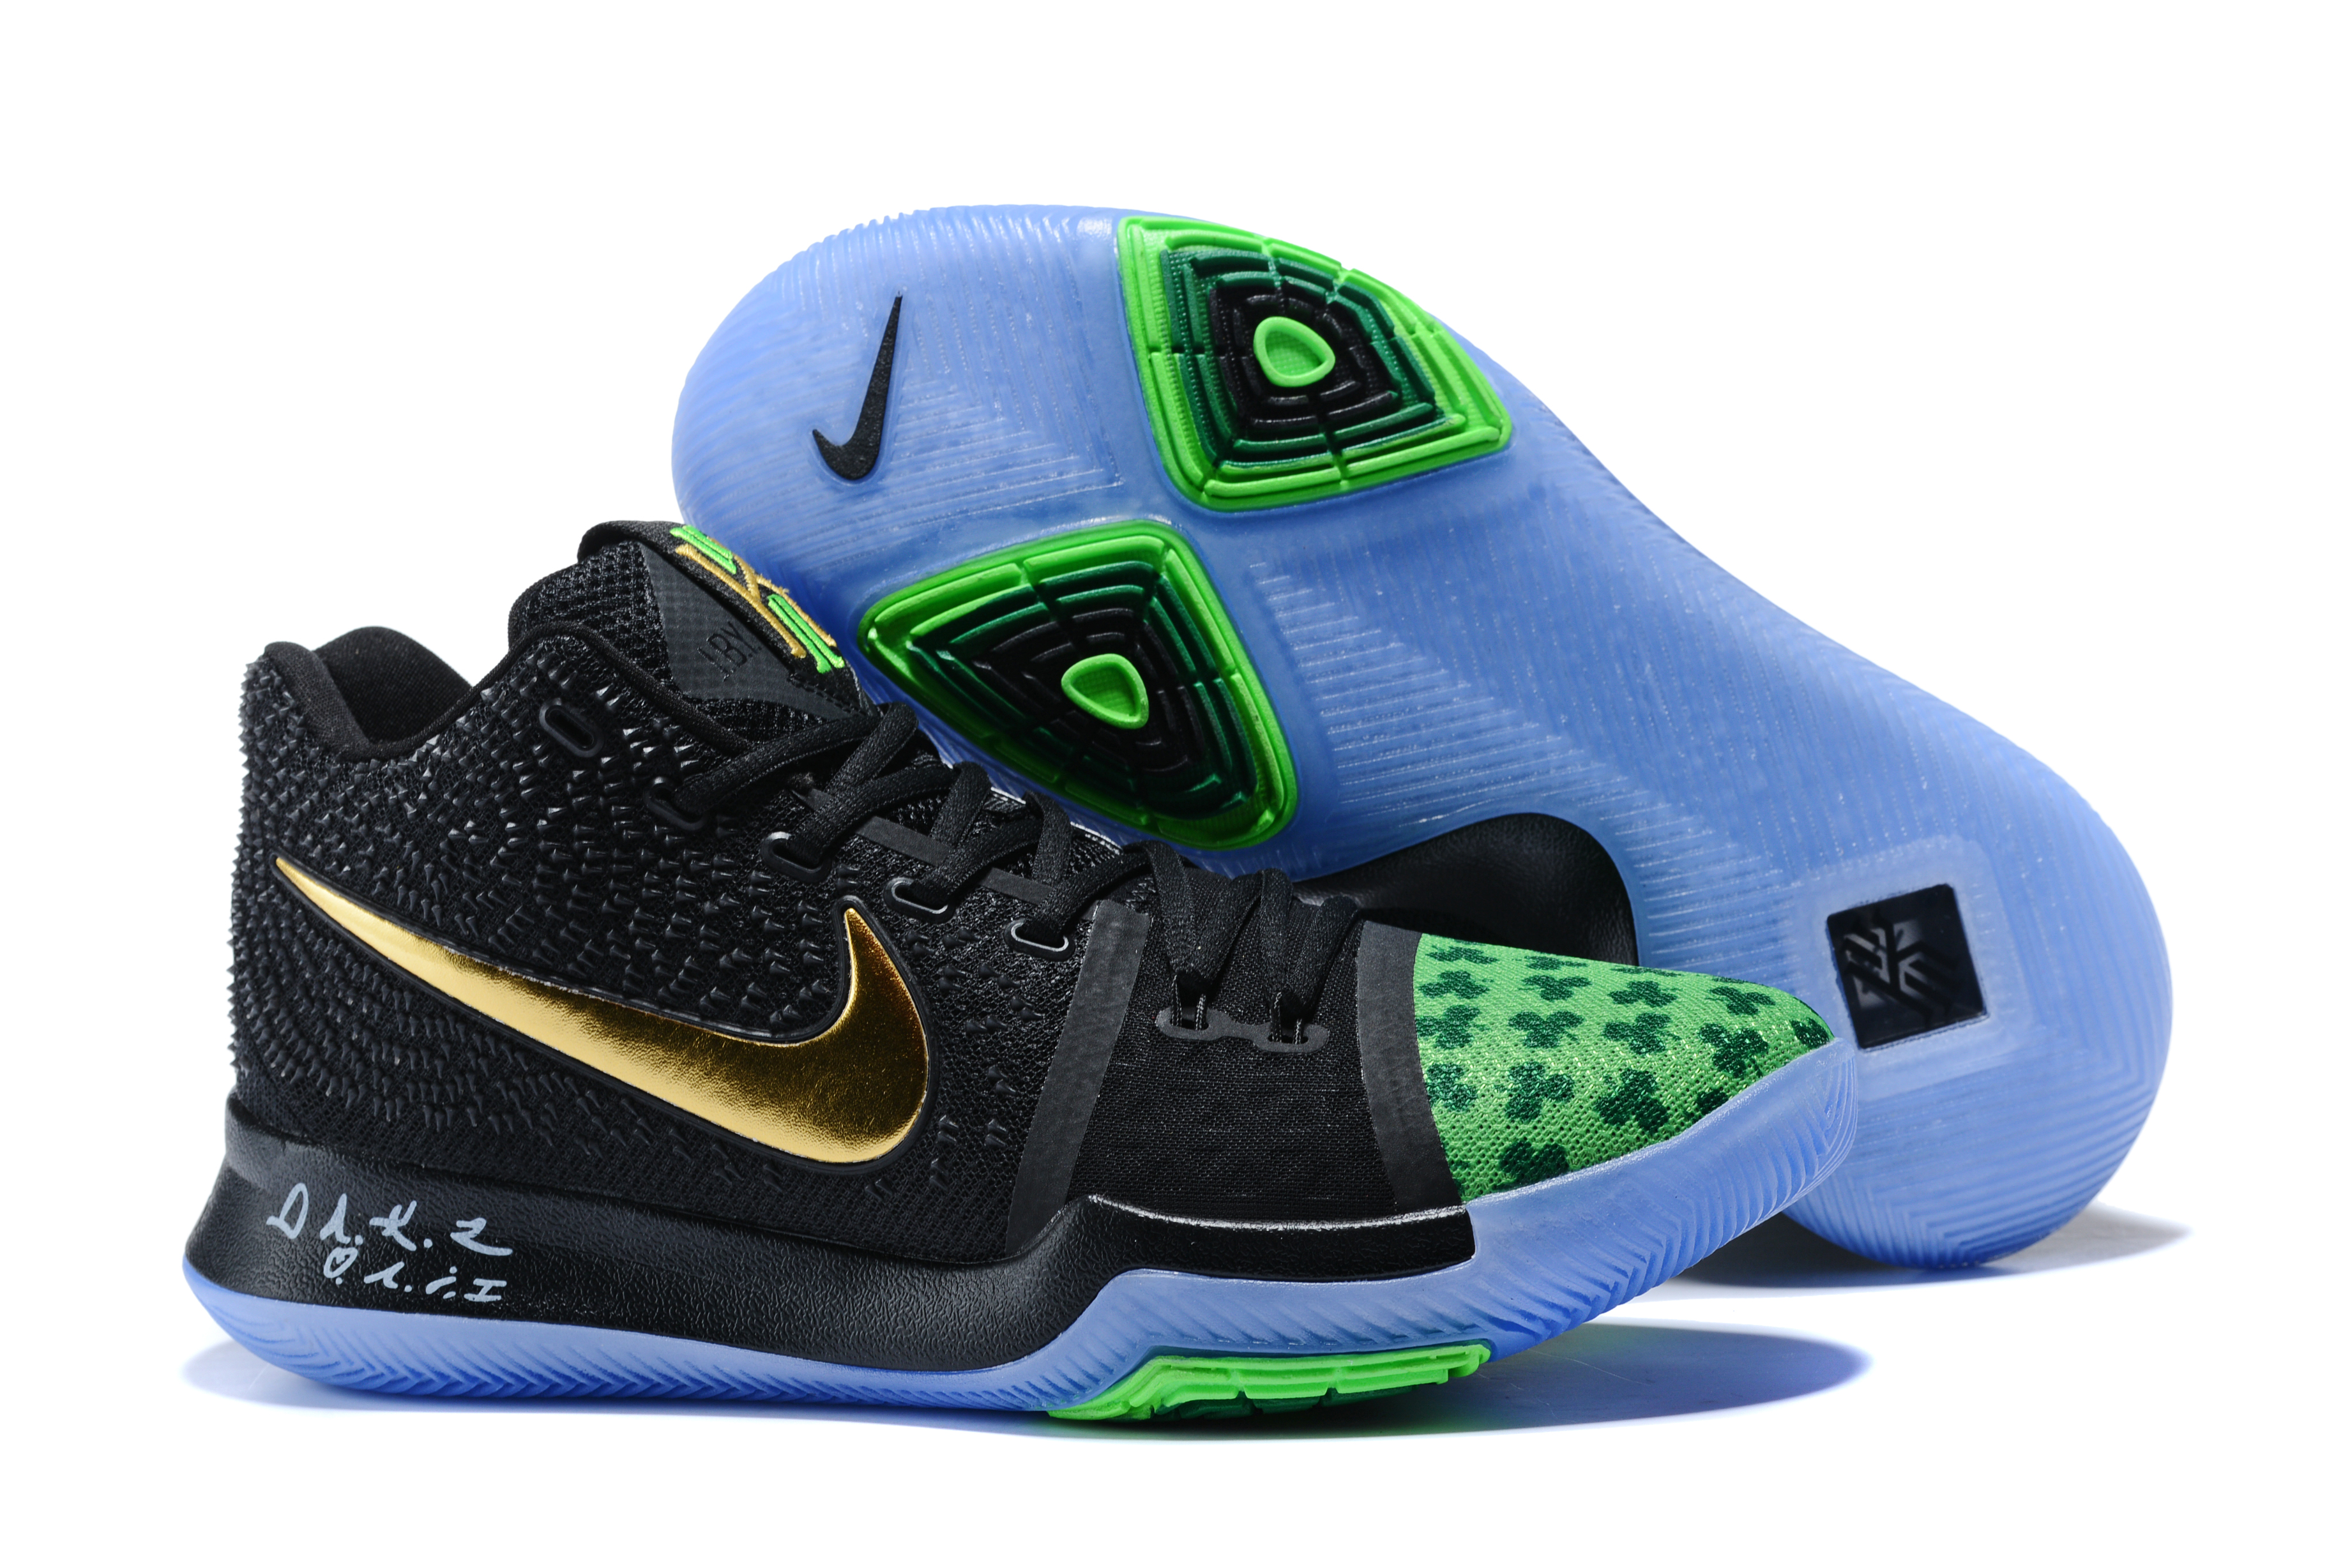 New Nike Kyrie 3 Black Green Gold Shoes